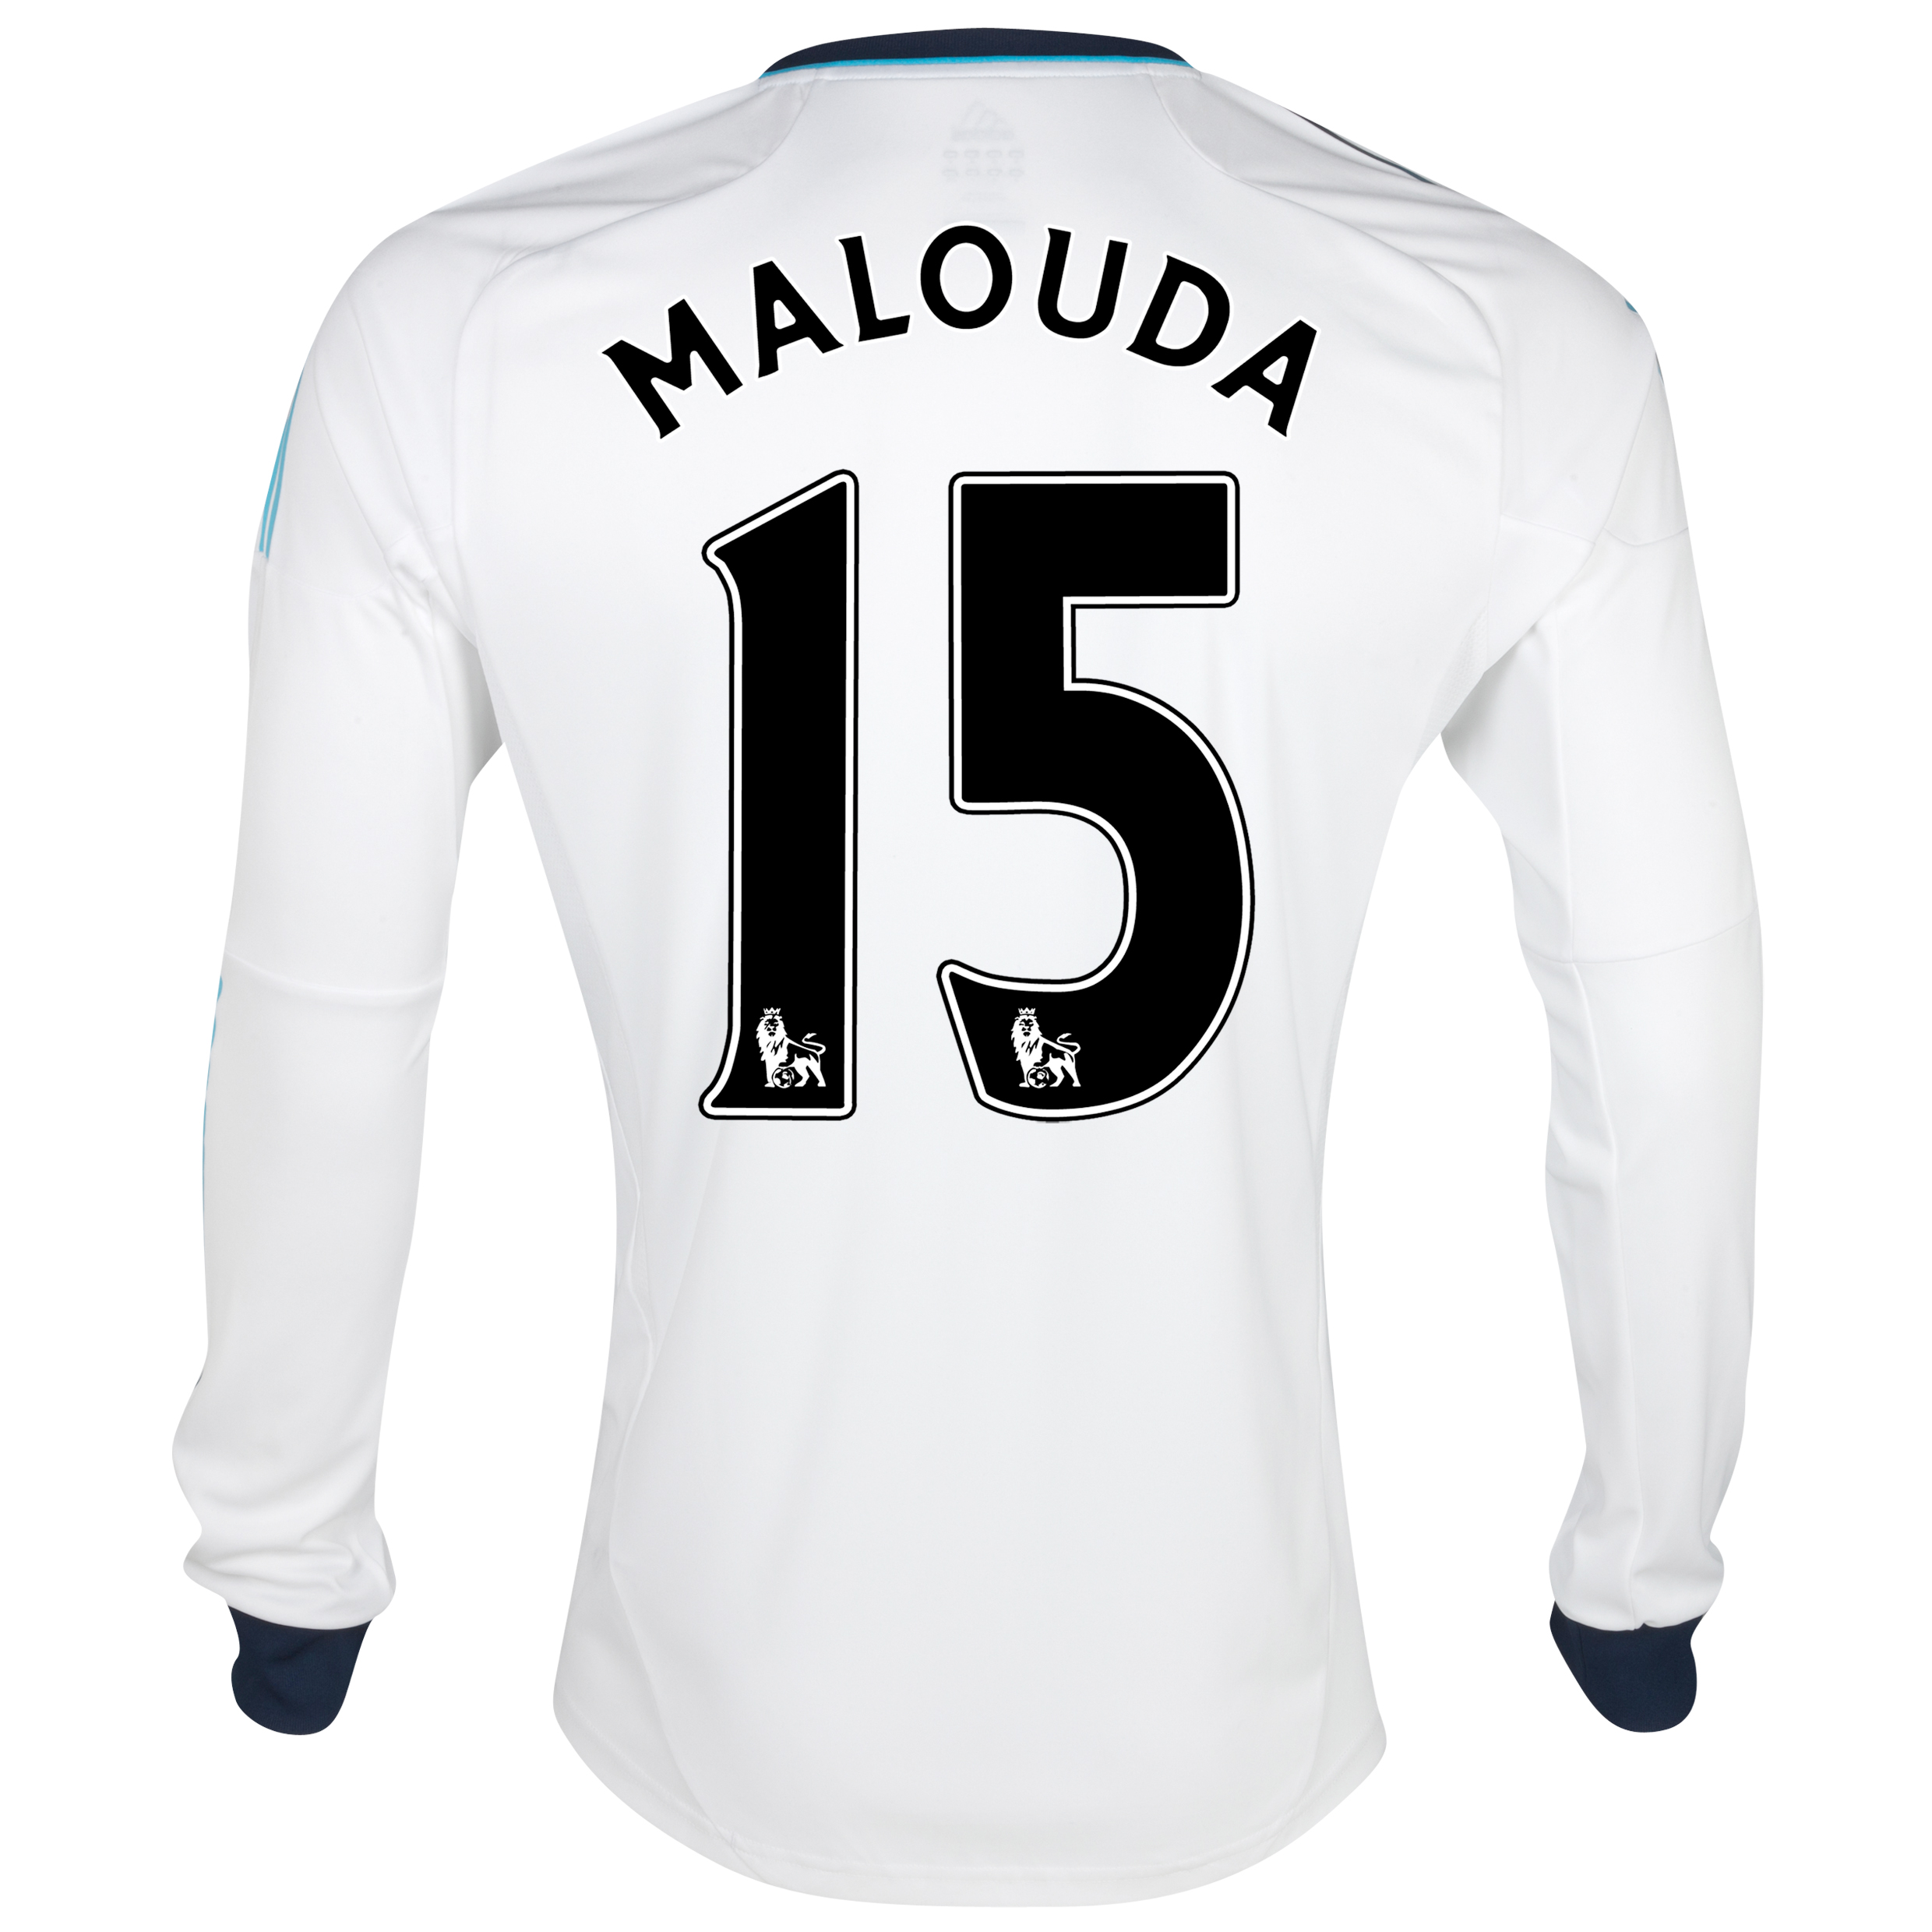 Chelsea Away Shirt 2012/13 - Long Sleeved - Kids with Malouda 15 printing